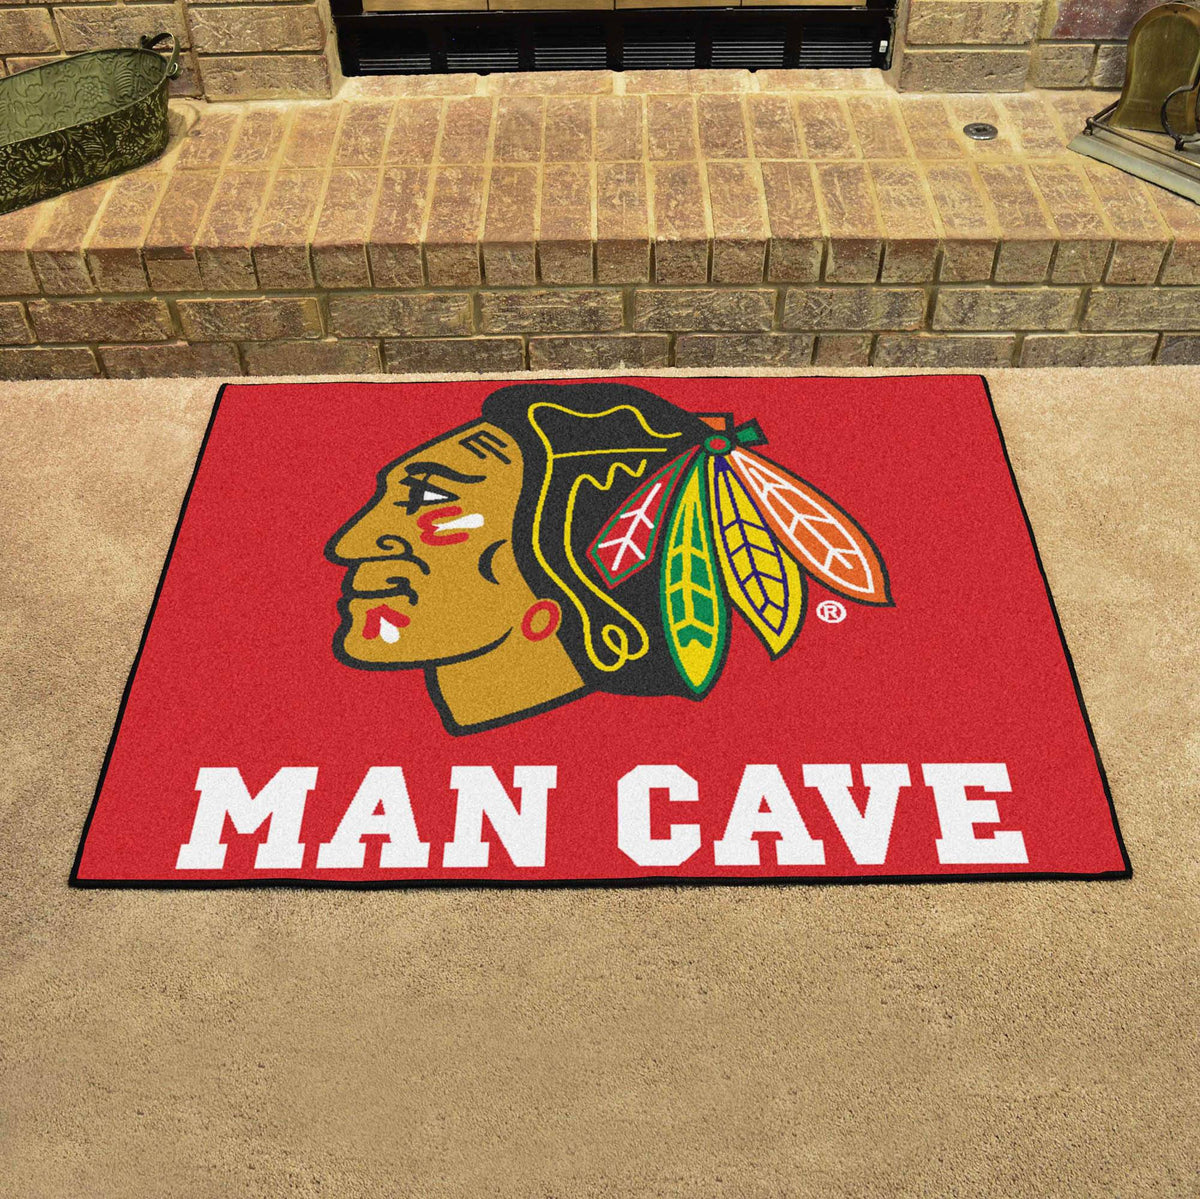 NHL - Man Cave All-Star NHL Mats, Rectangular Mats, Man Cave All-Star Mat, NHL, Home Fan Mats Chicago Blackhawks